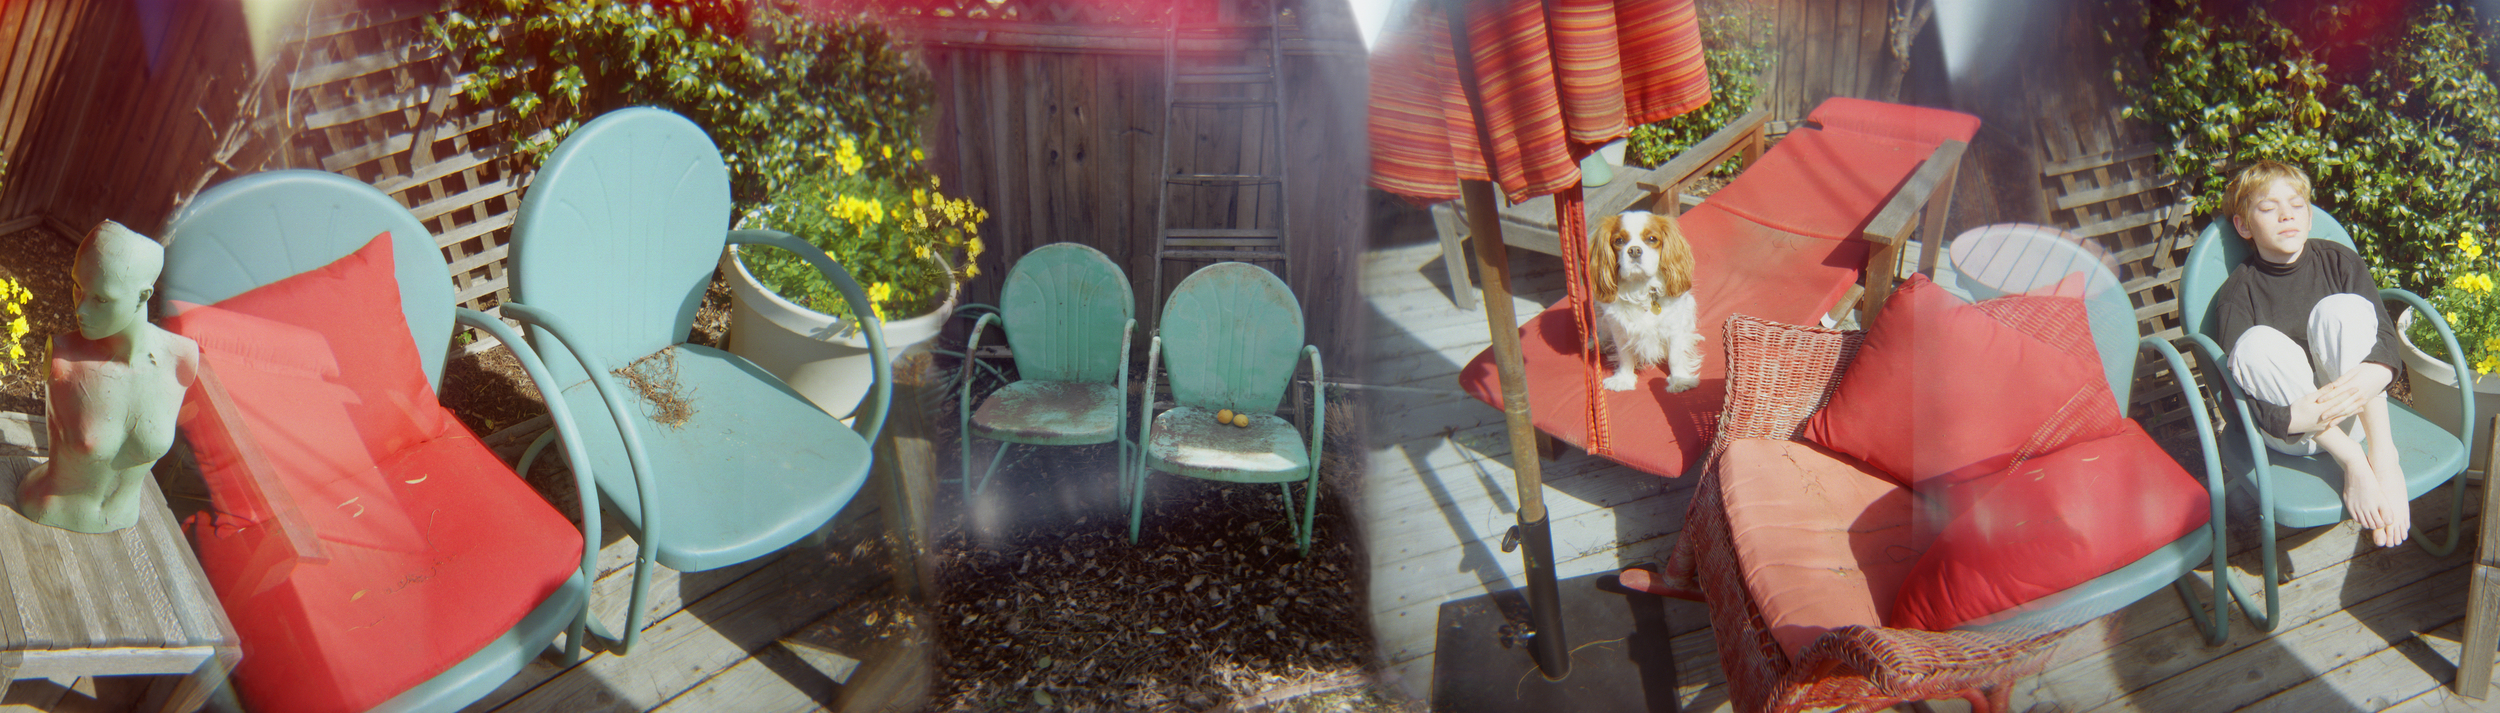 Pano Backyard chairs Jack.jpg